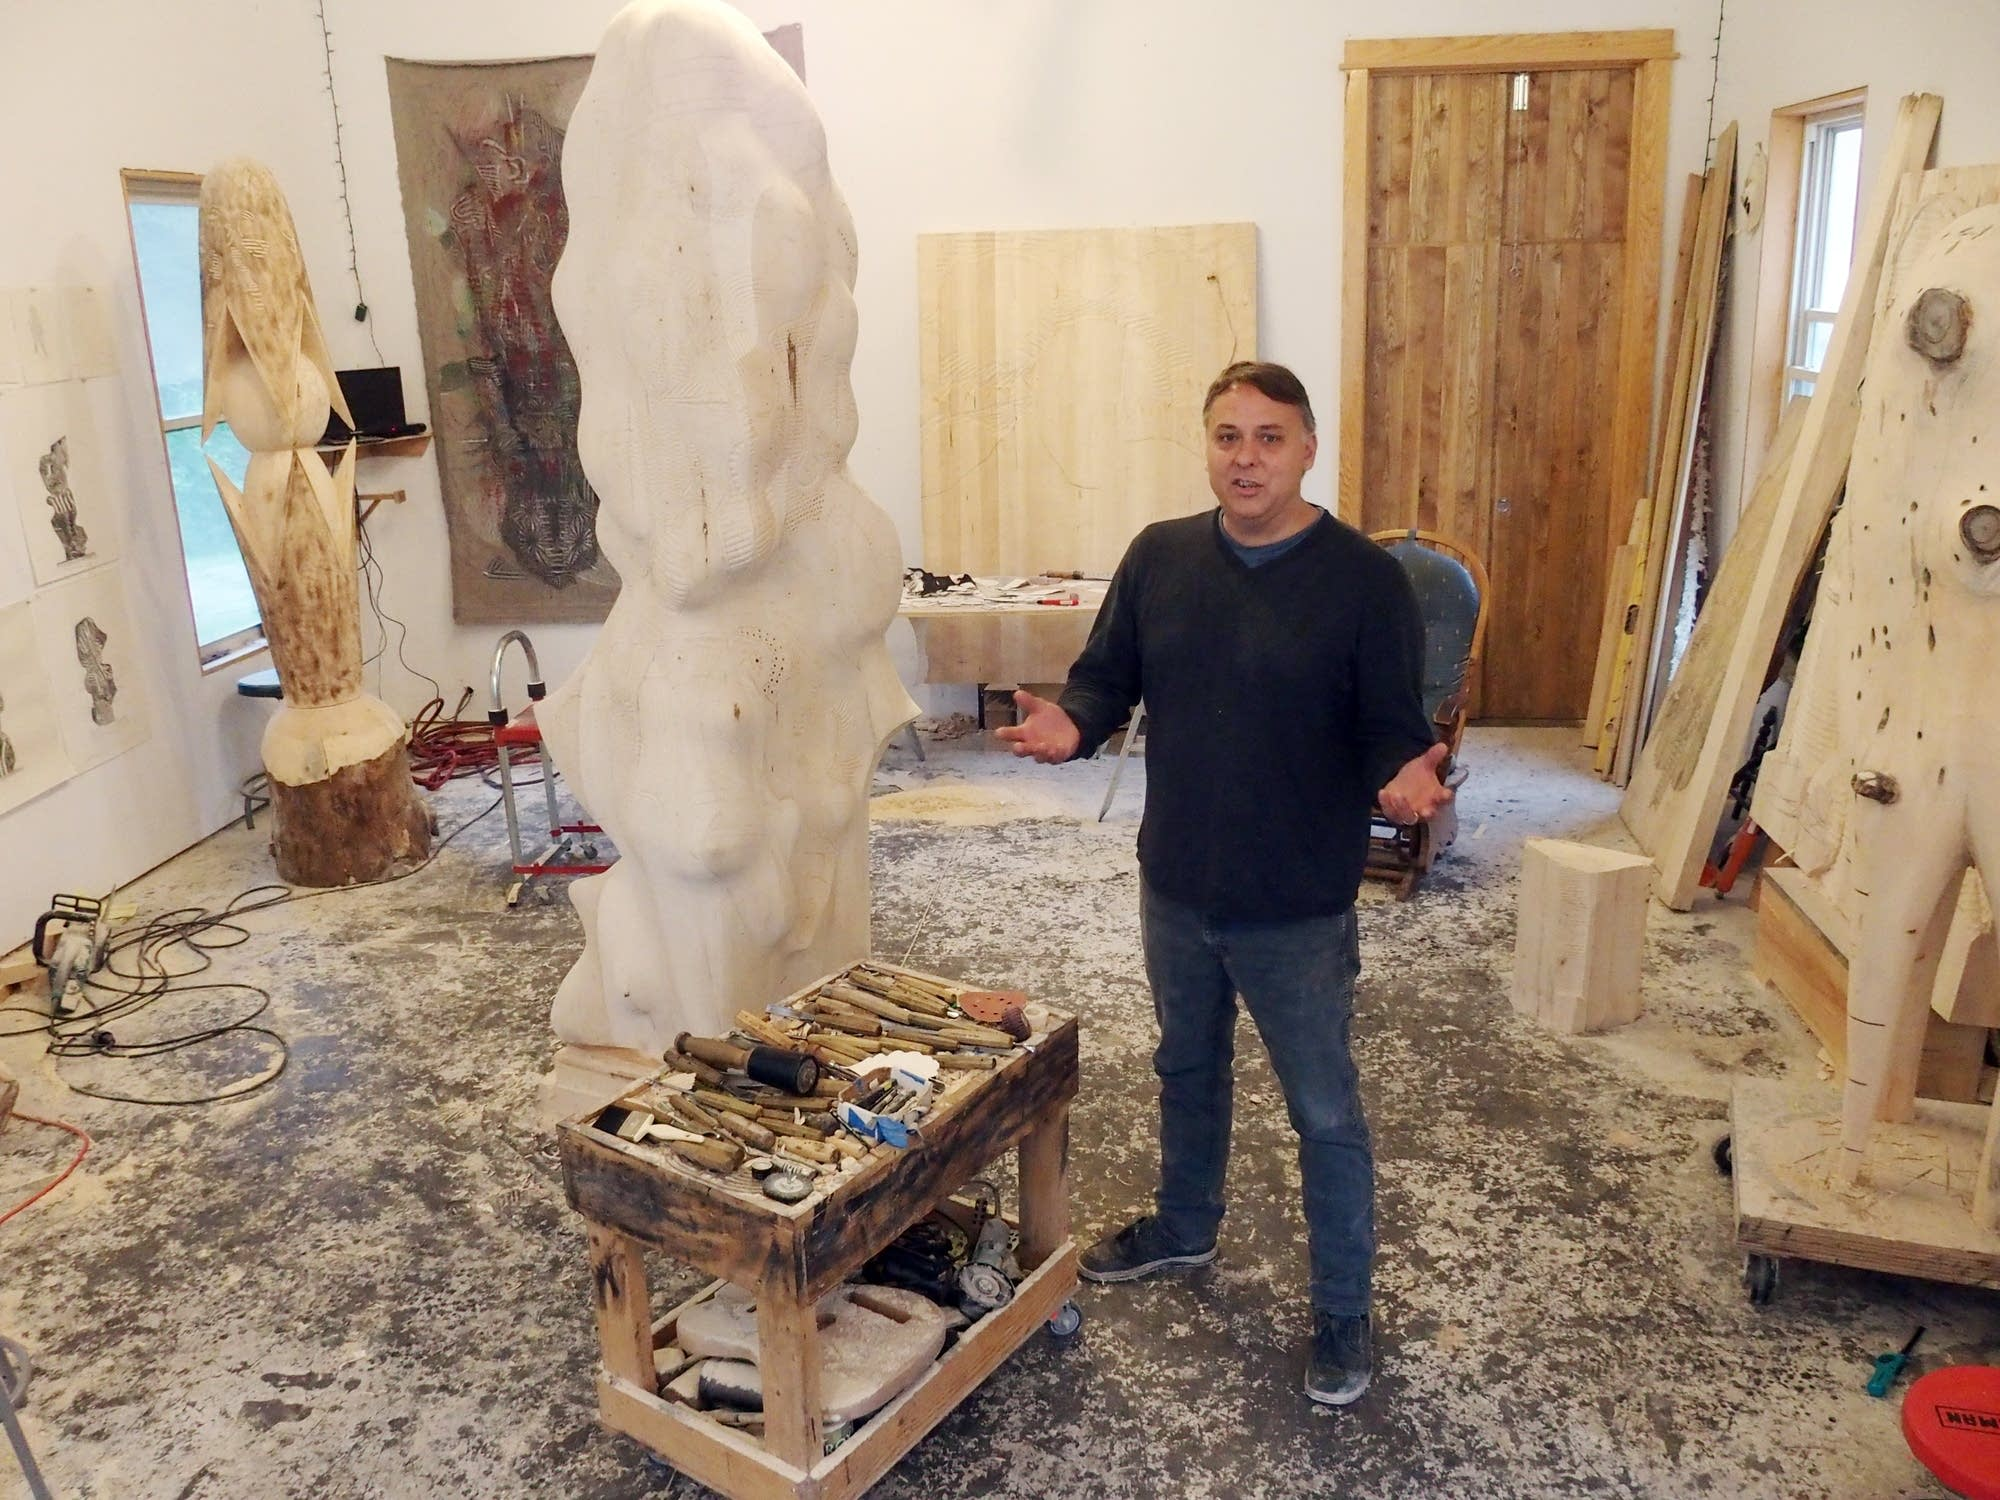 Aaron Spangler in his studio in Park Rapids.